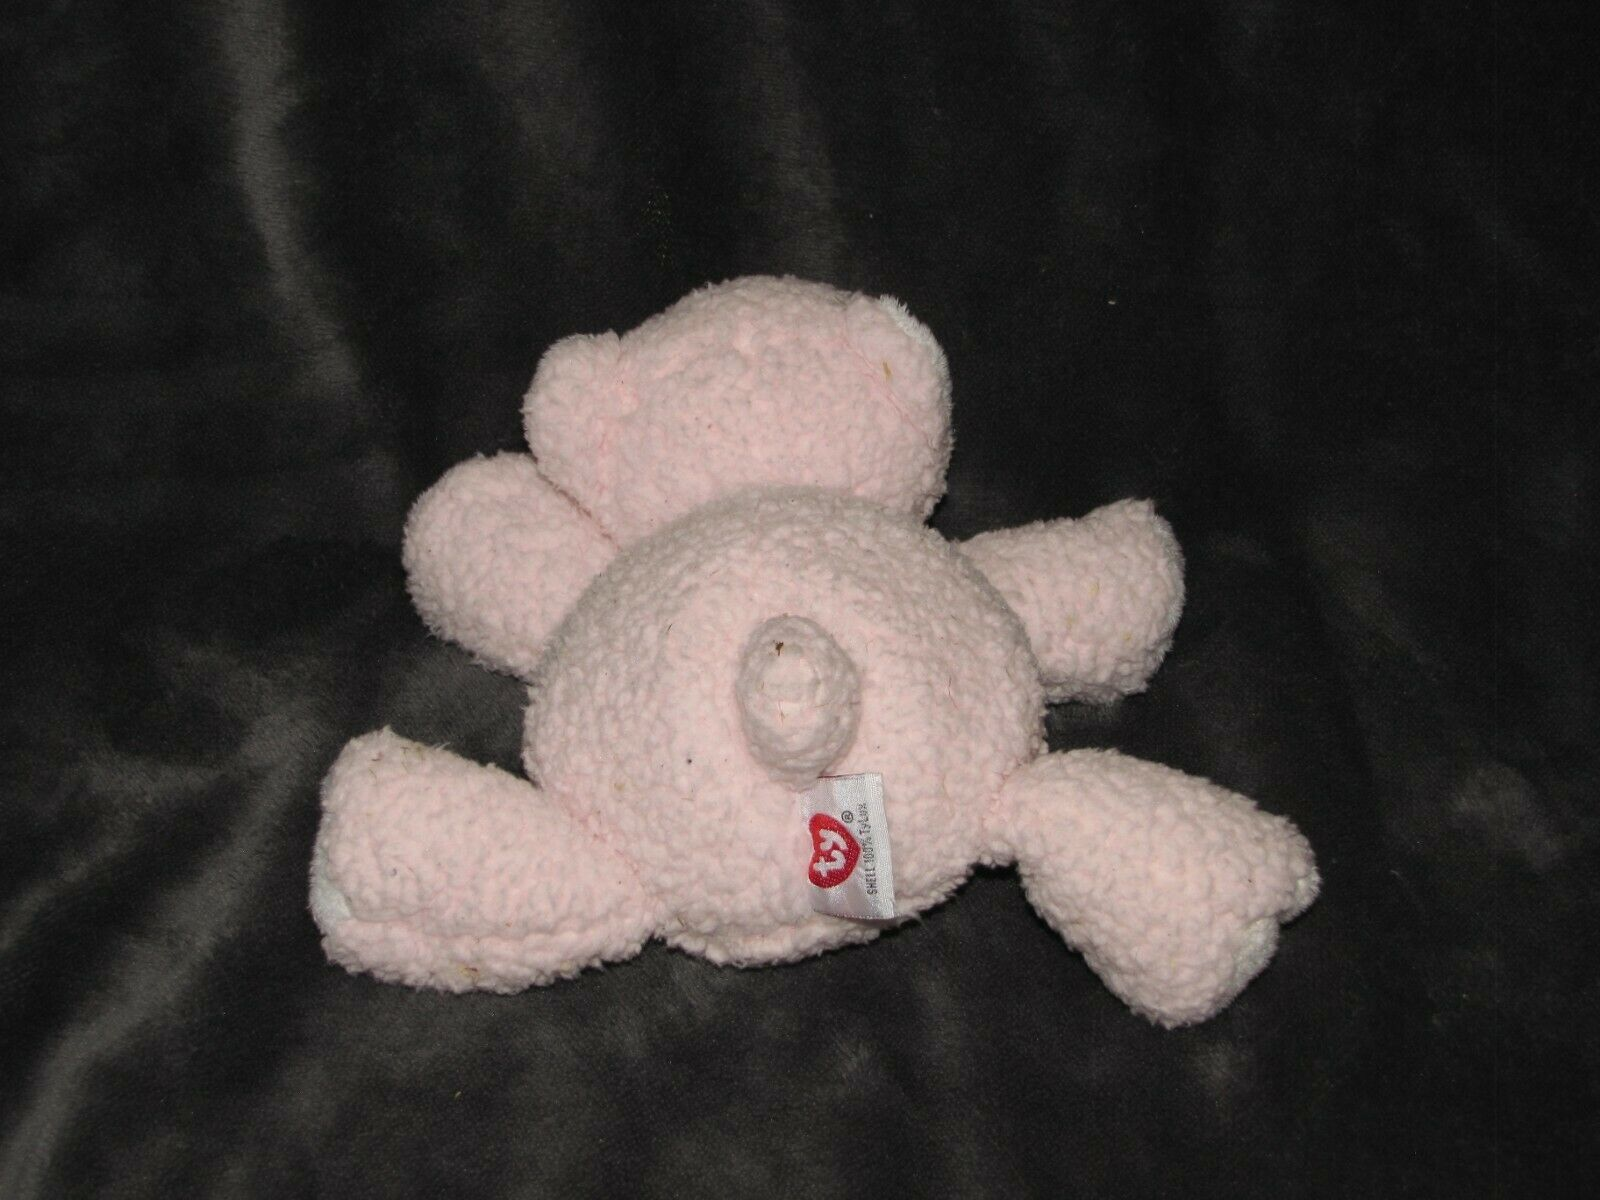 TY PLUFFIES 2005 CUBBY CUDDLES LOVE TO BABY TEDDY BEAR PINK STUFFED ANIMAL PLUSH